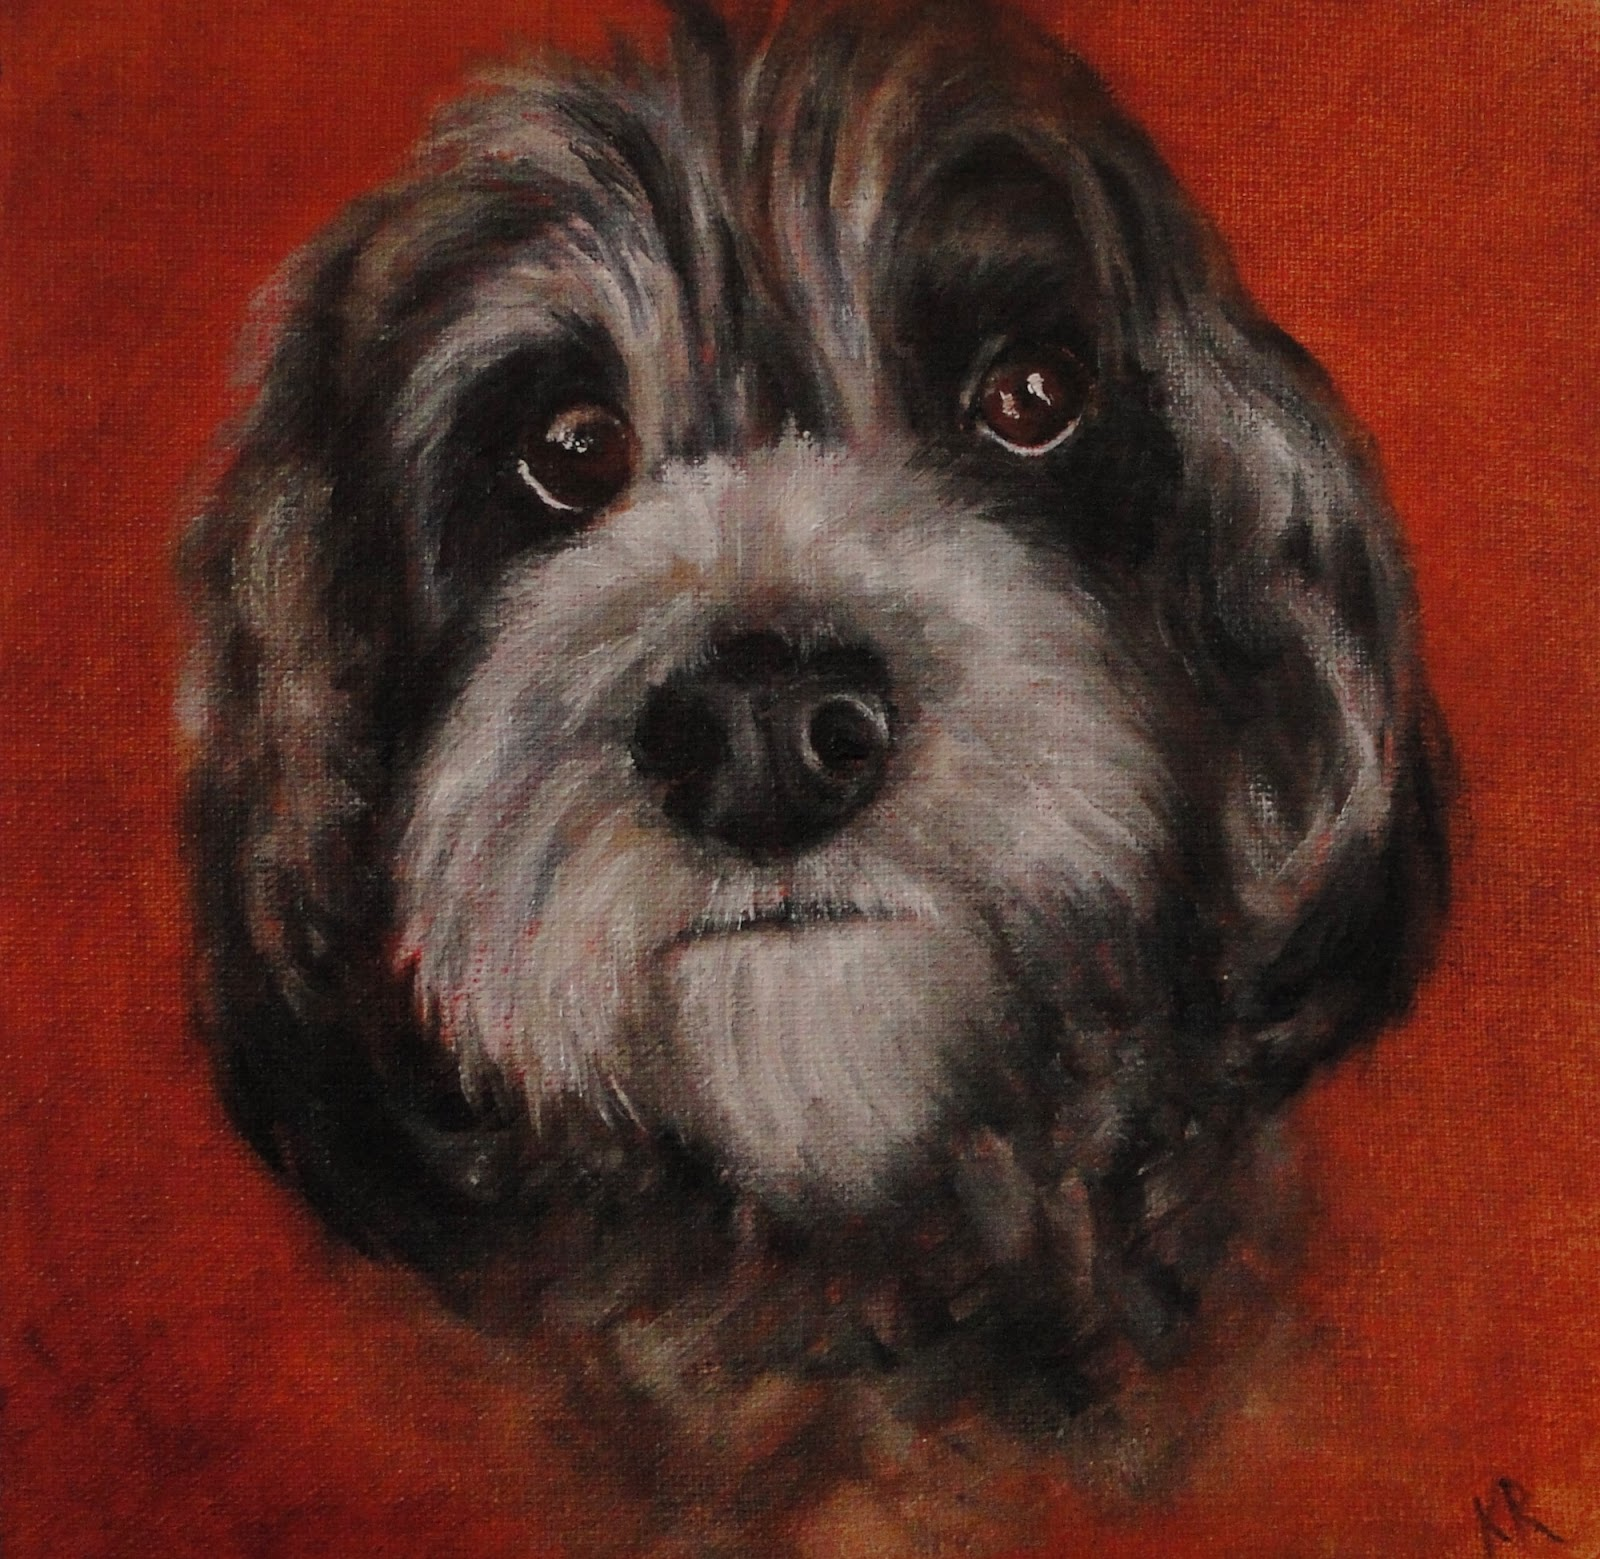 Oil painting, portrait of a dog, sweet face, a pet portrait by Karen